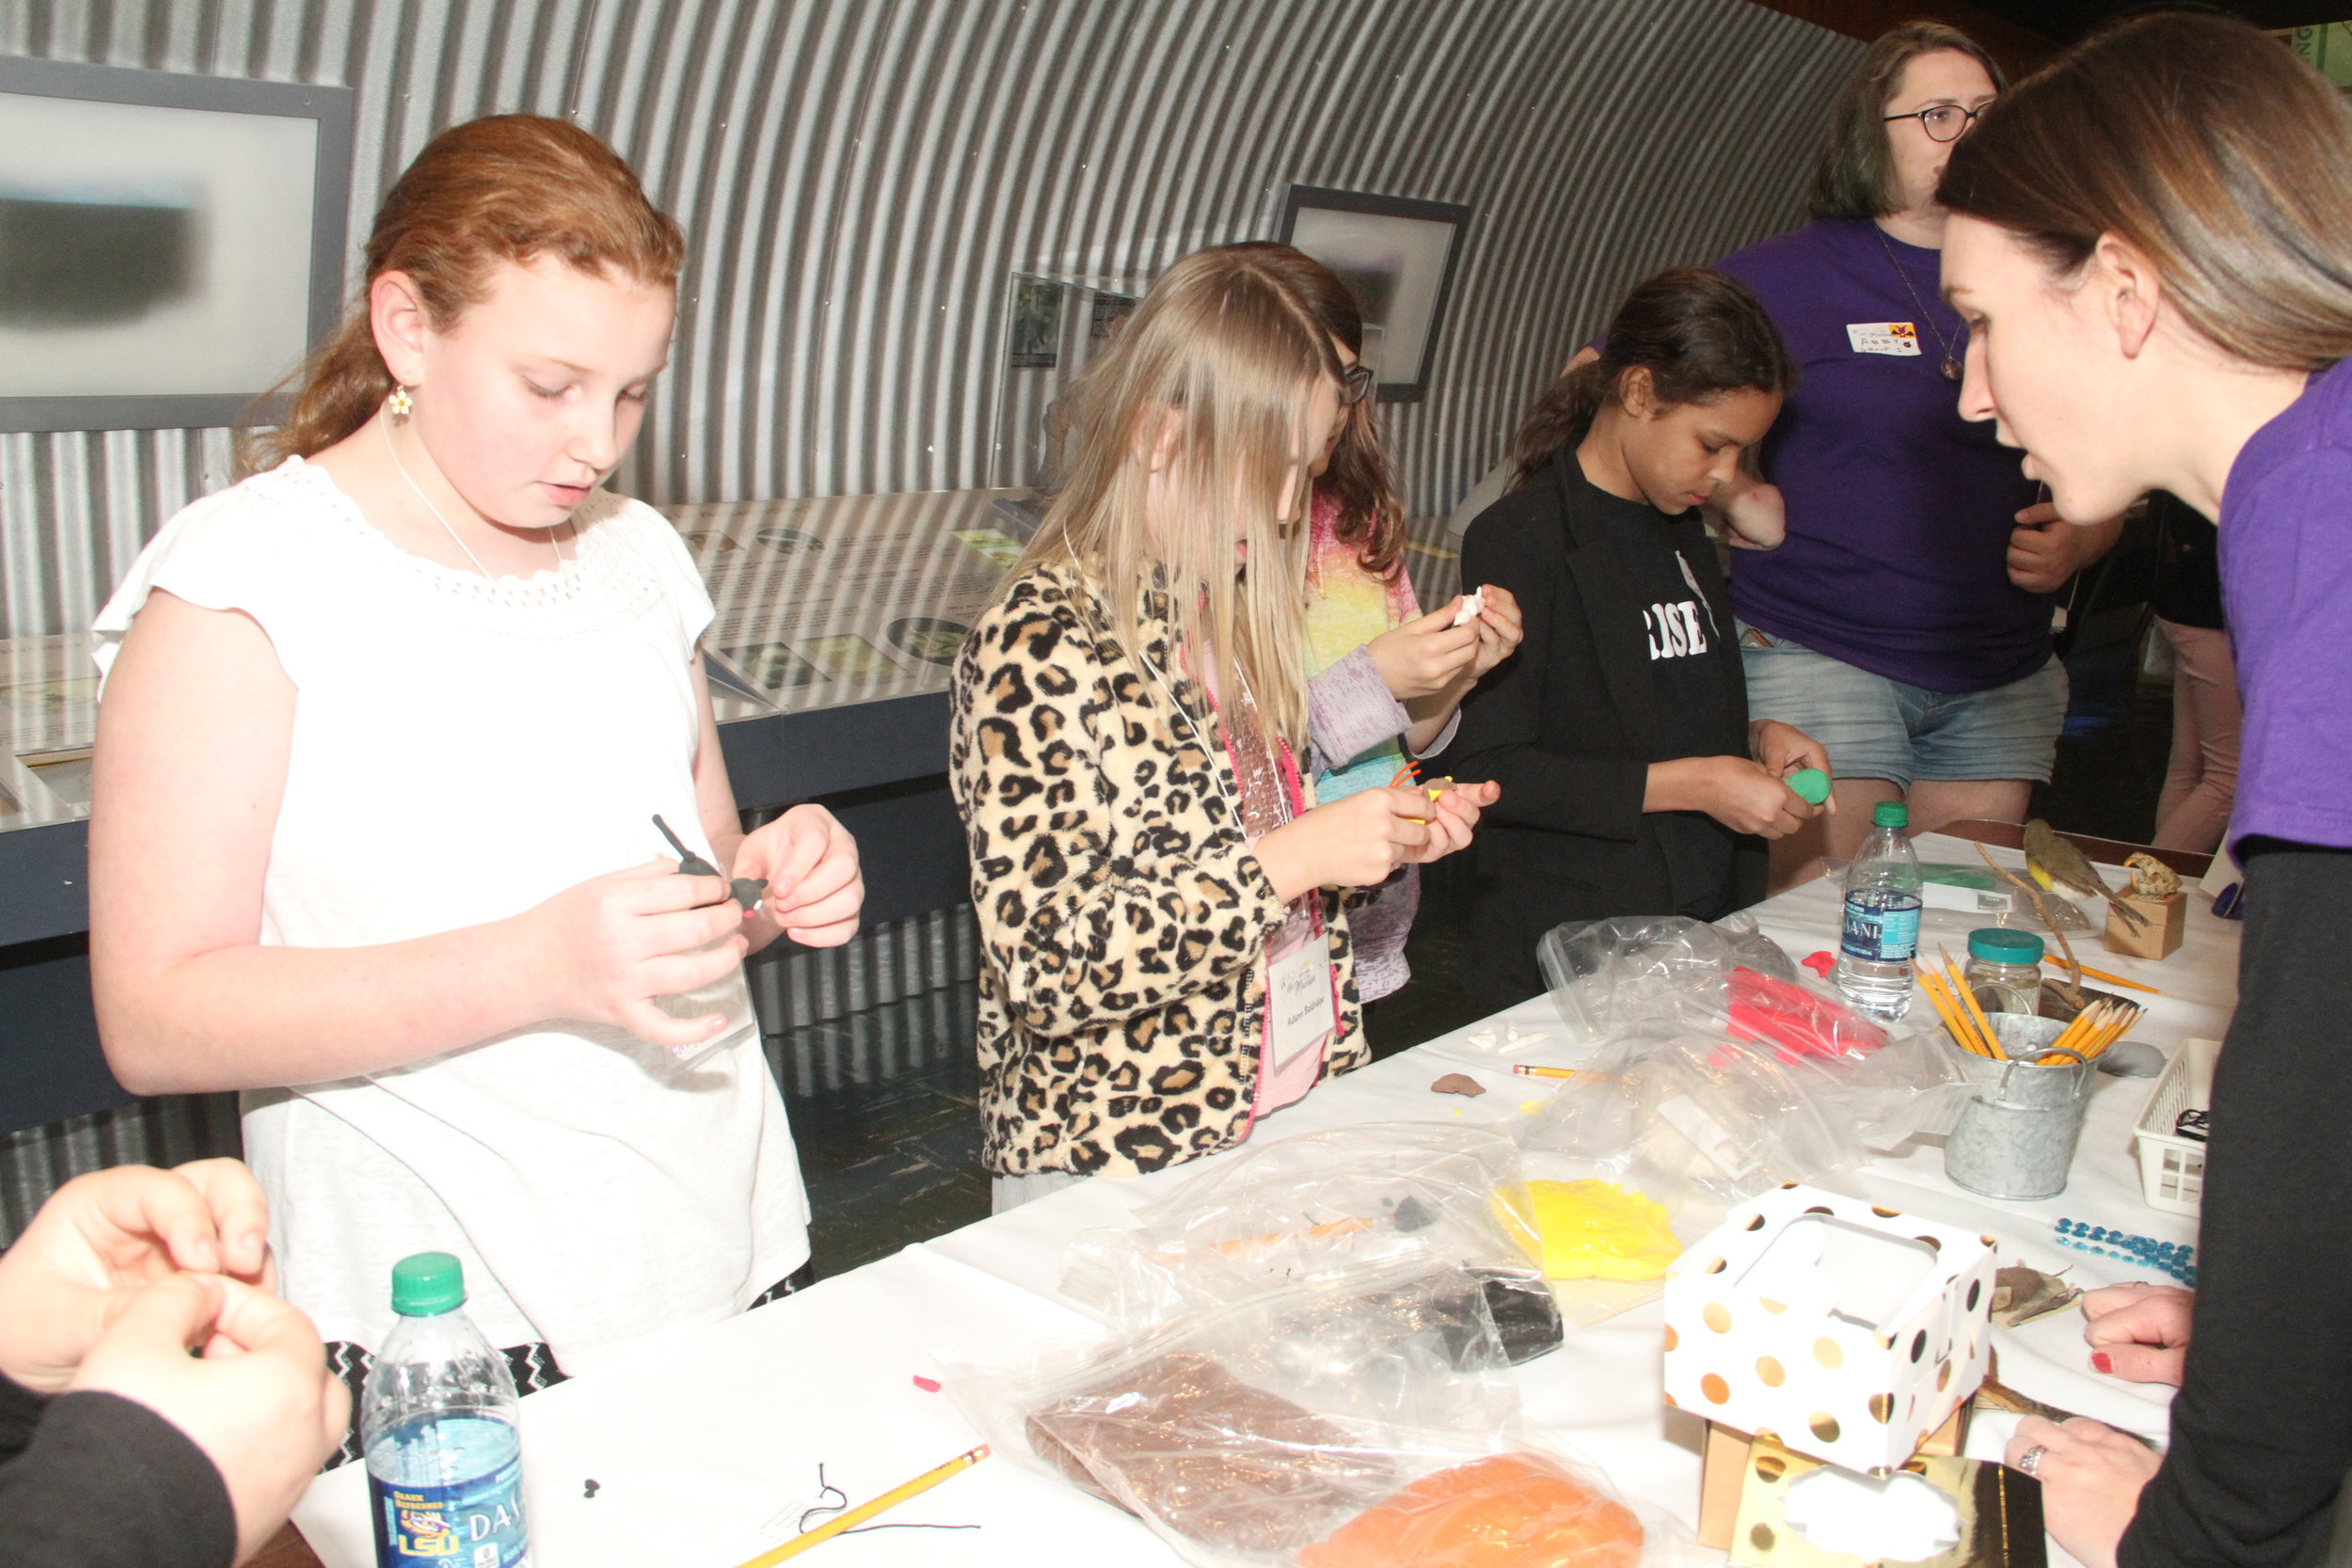 The girls made specimens out of clay and tagged them just like scientists in the LSU Museum of Natural Science at the Build-A-Specimen science activity station.